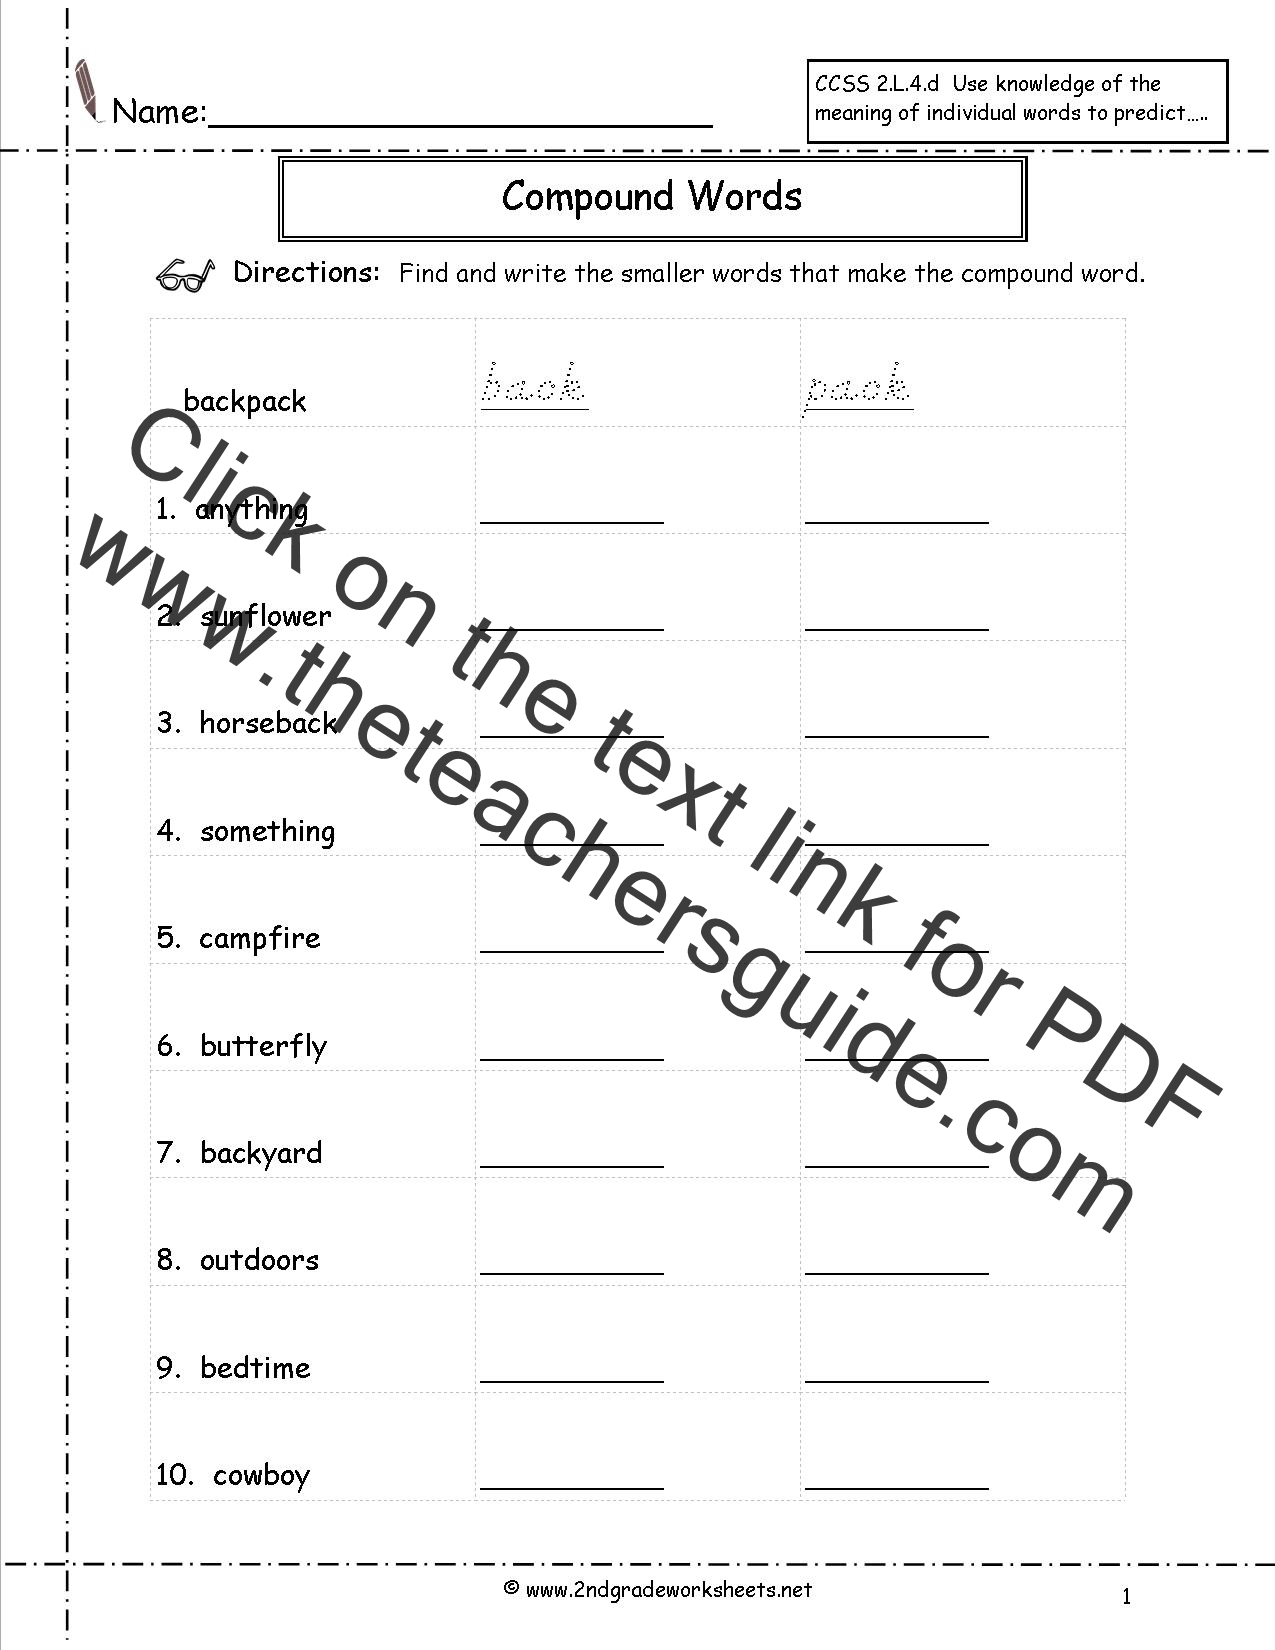 Worksheets For 2nd Grade: Free Language Grammar Worksheets and Printouts,